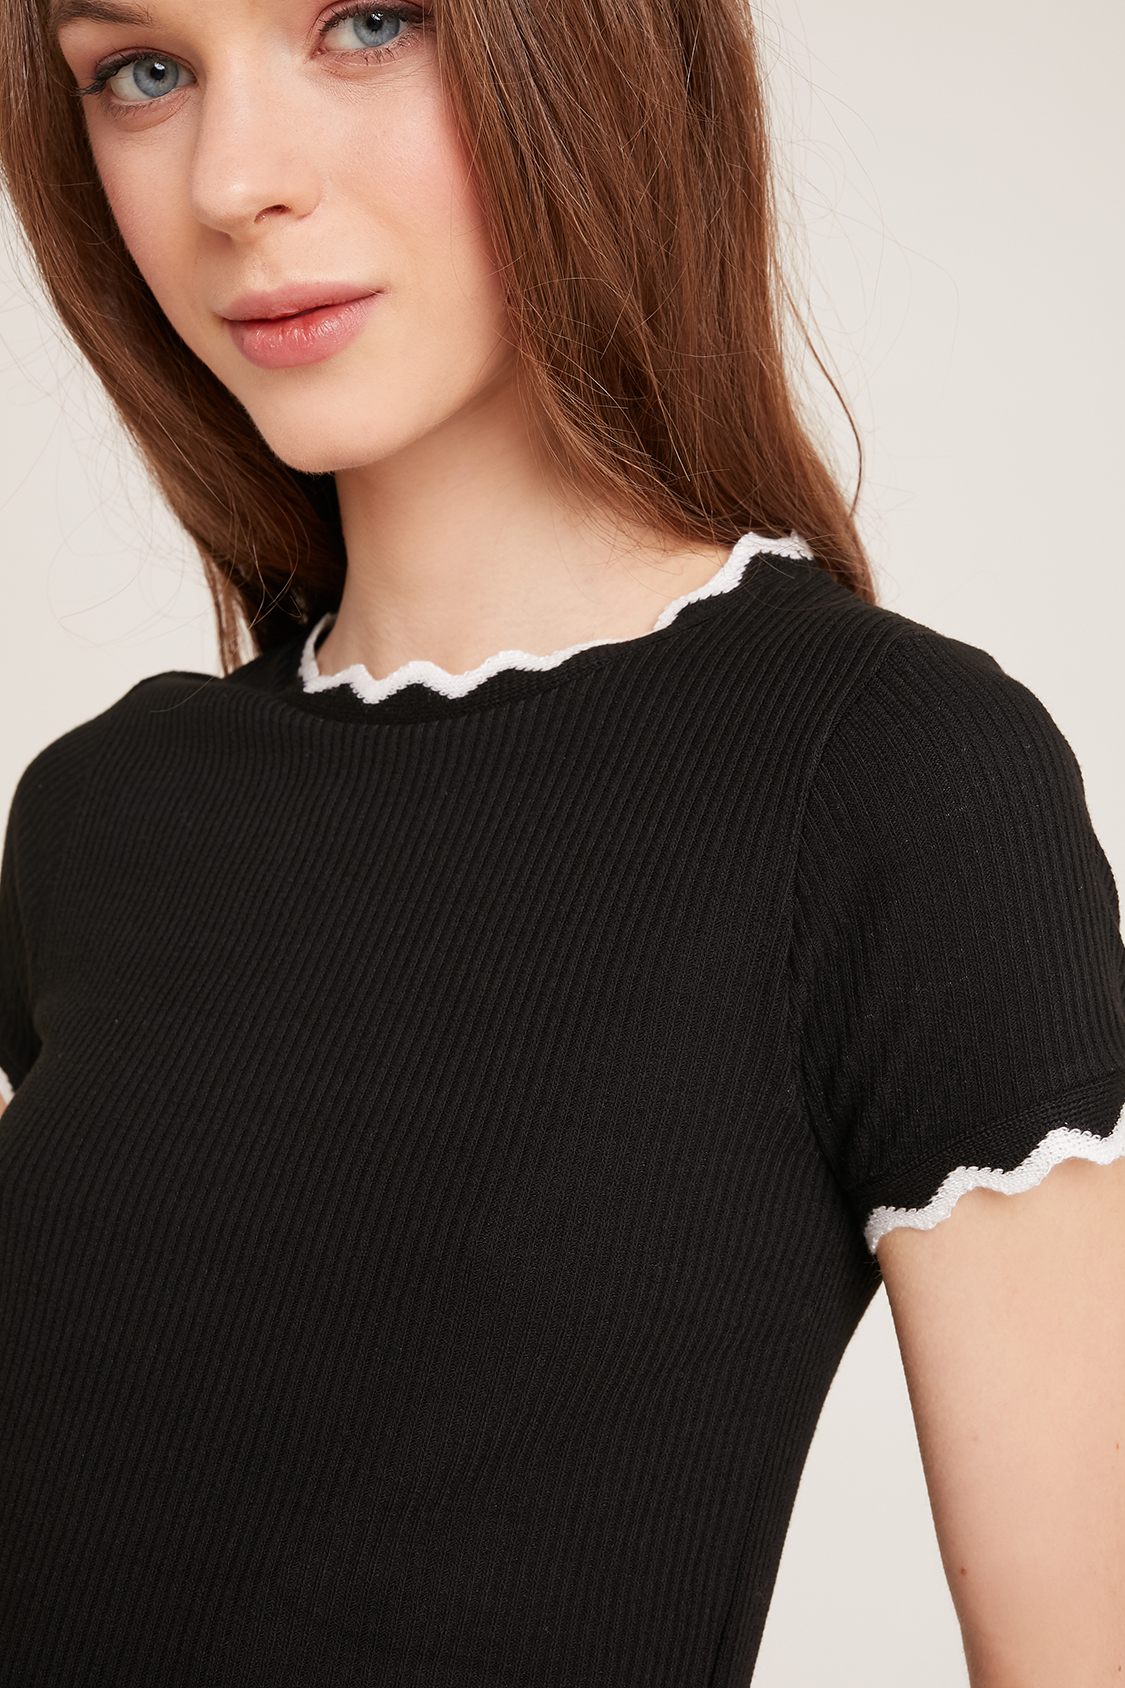 e49cb0339ef93 Frill hem t-shirt. Skip to the beginning of the images gallery